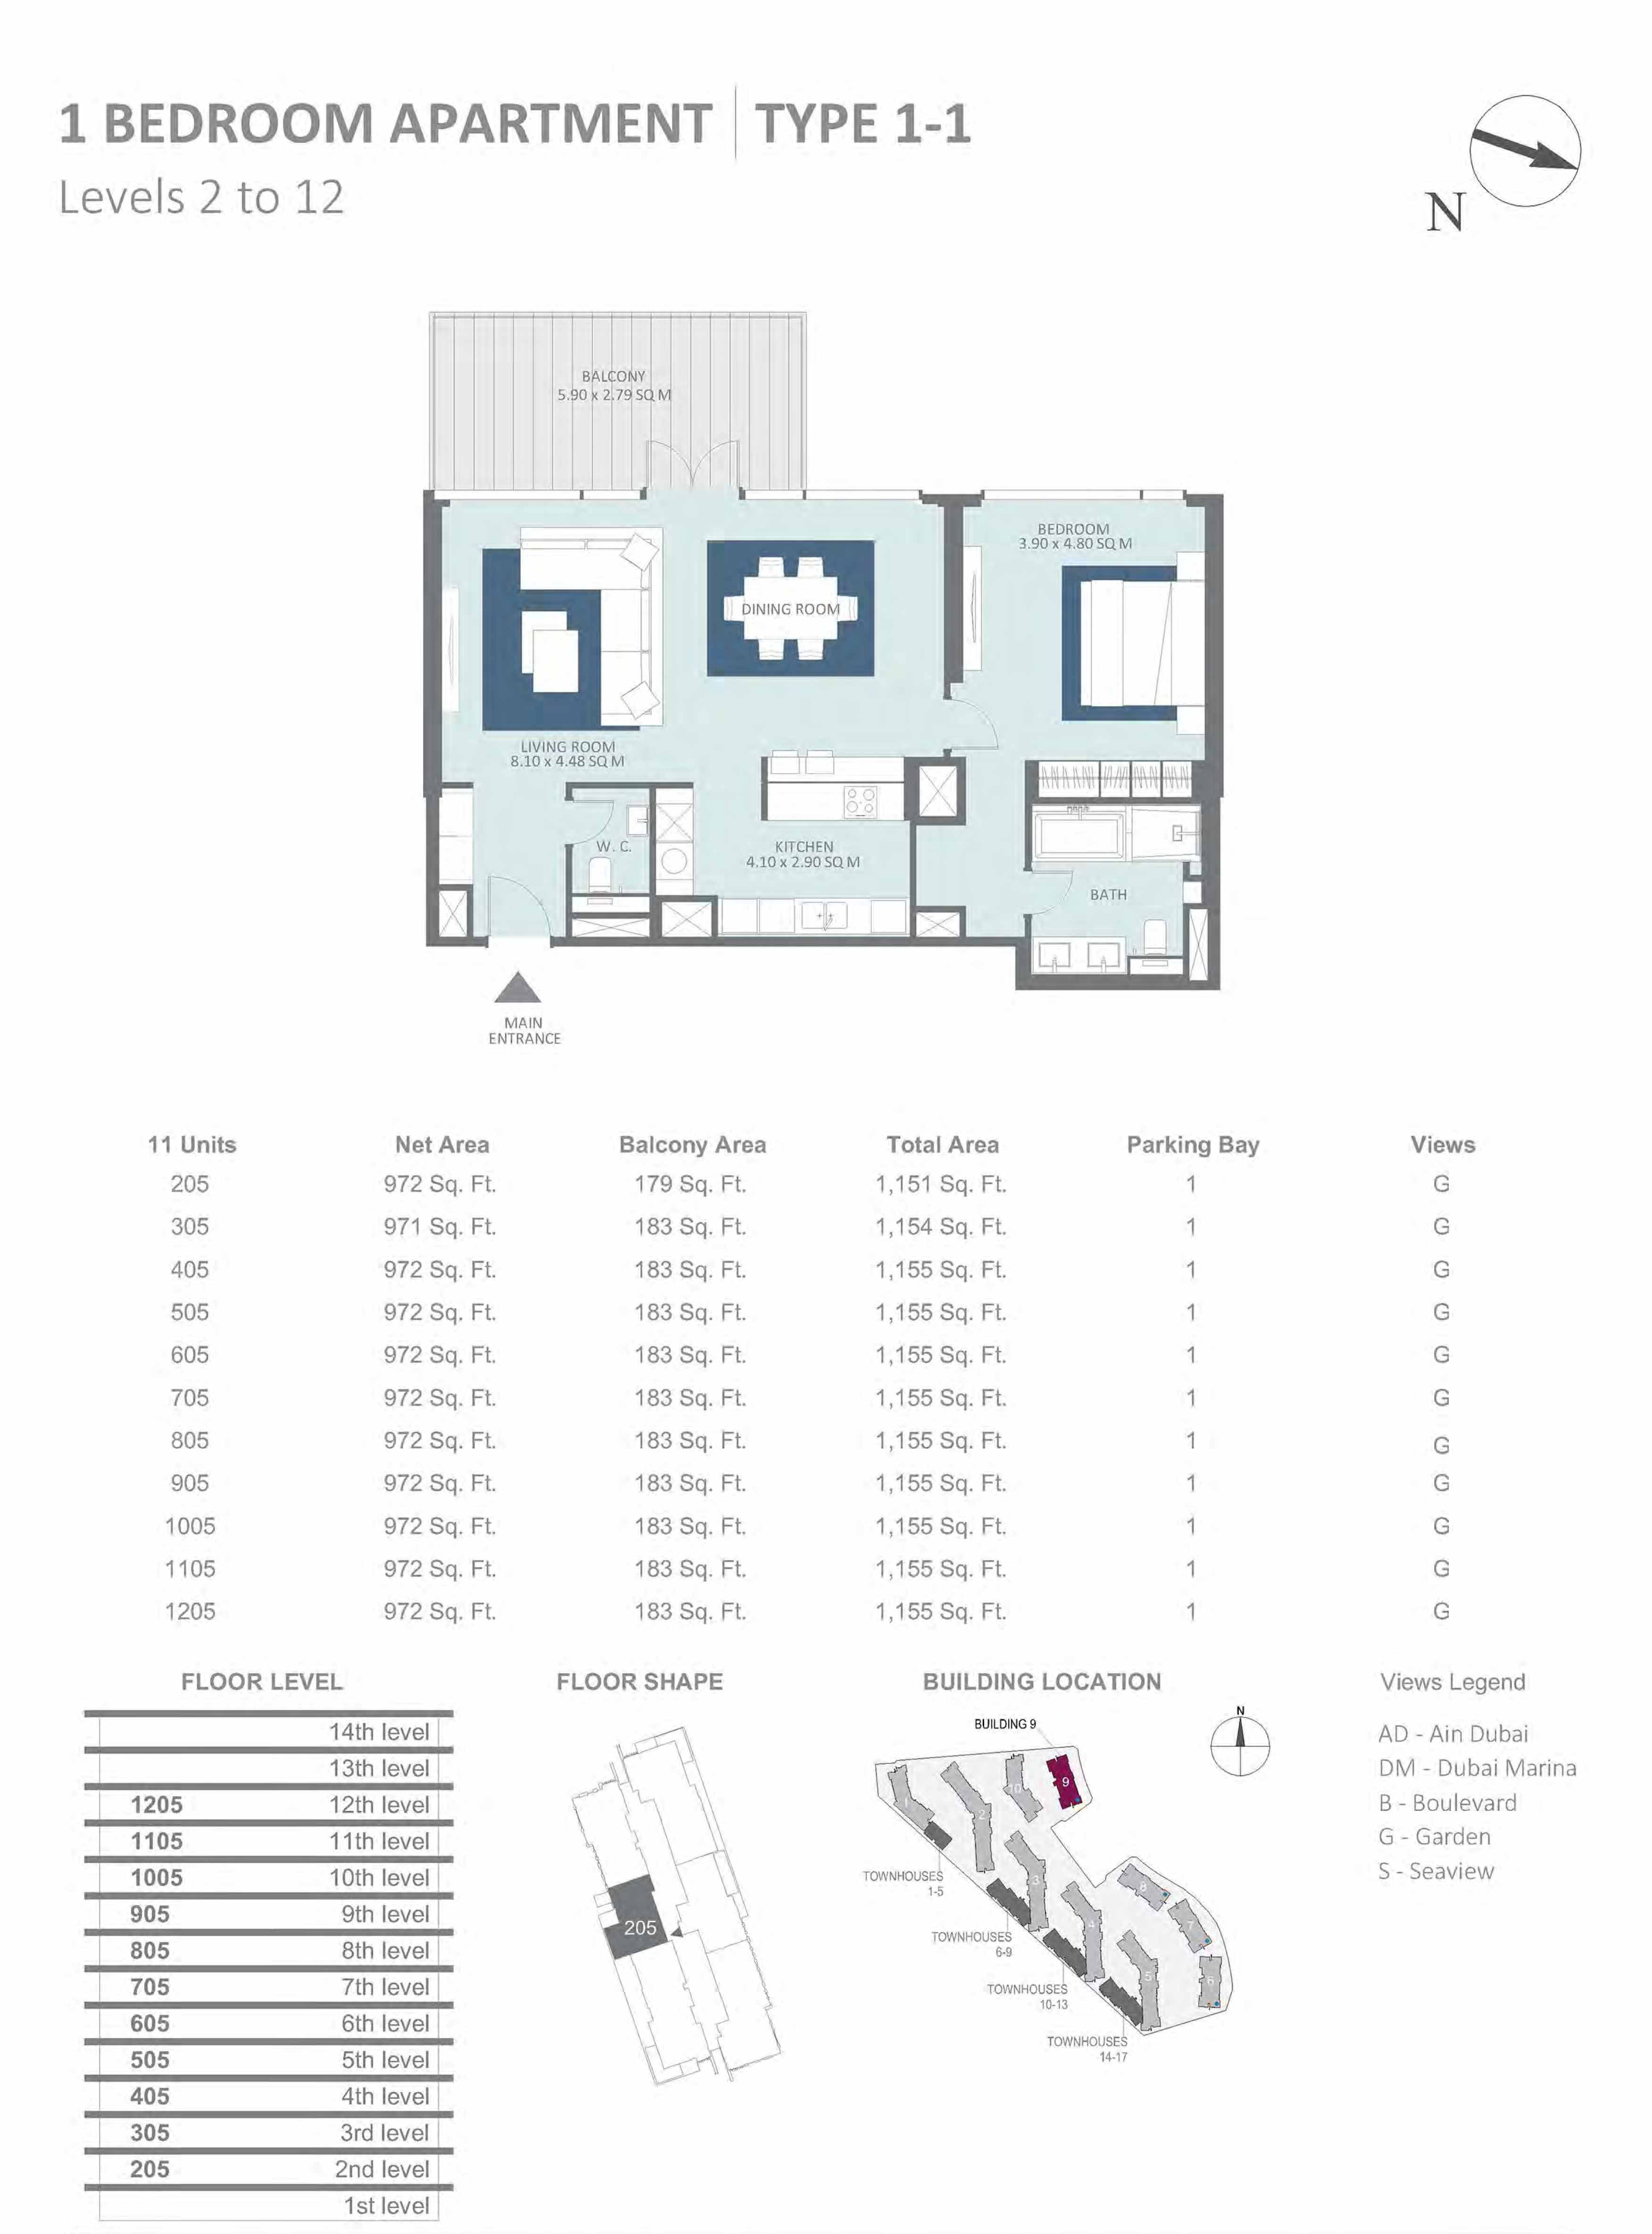 Building 9 - 1 Bedroom Type 1-1, Level 2 to 12 Size 1151 to 1155  sq. ft.